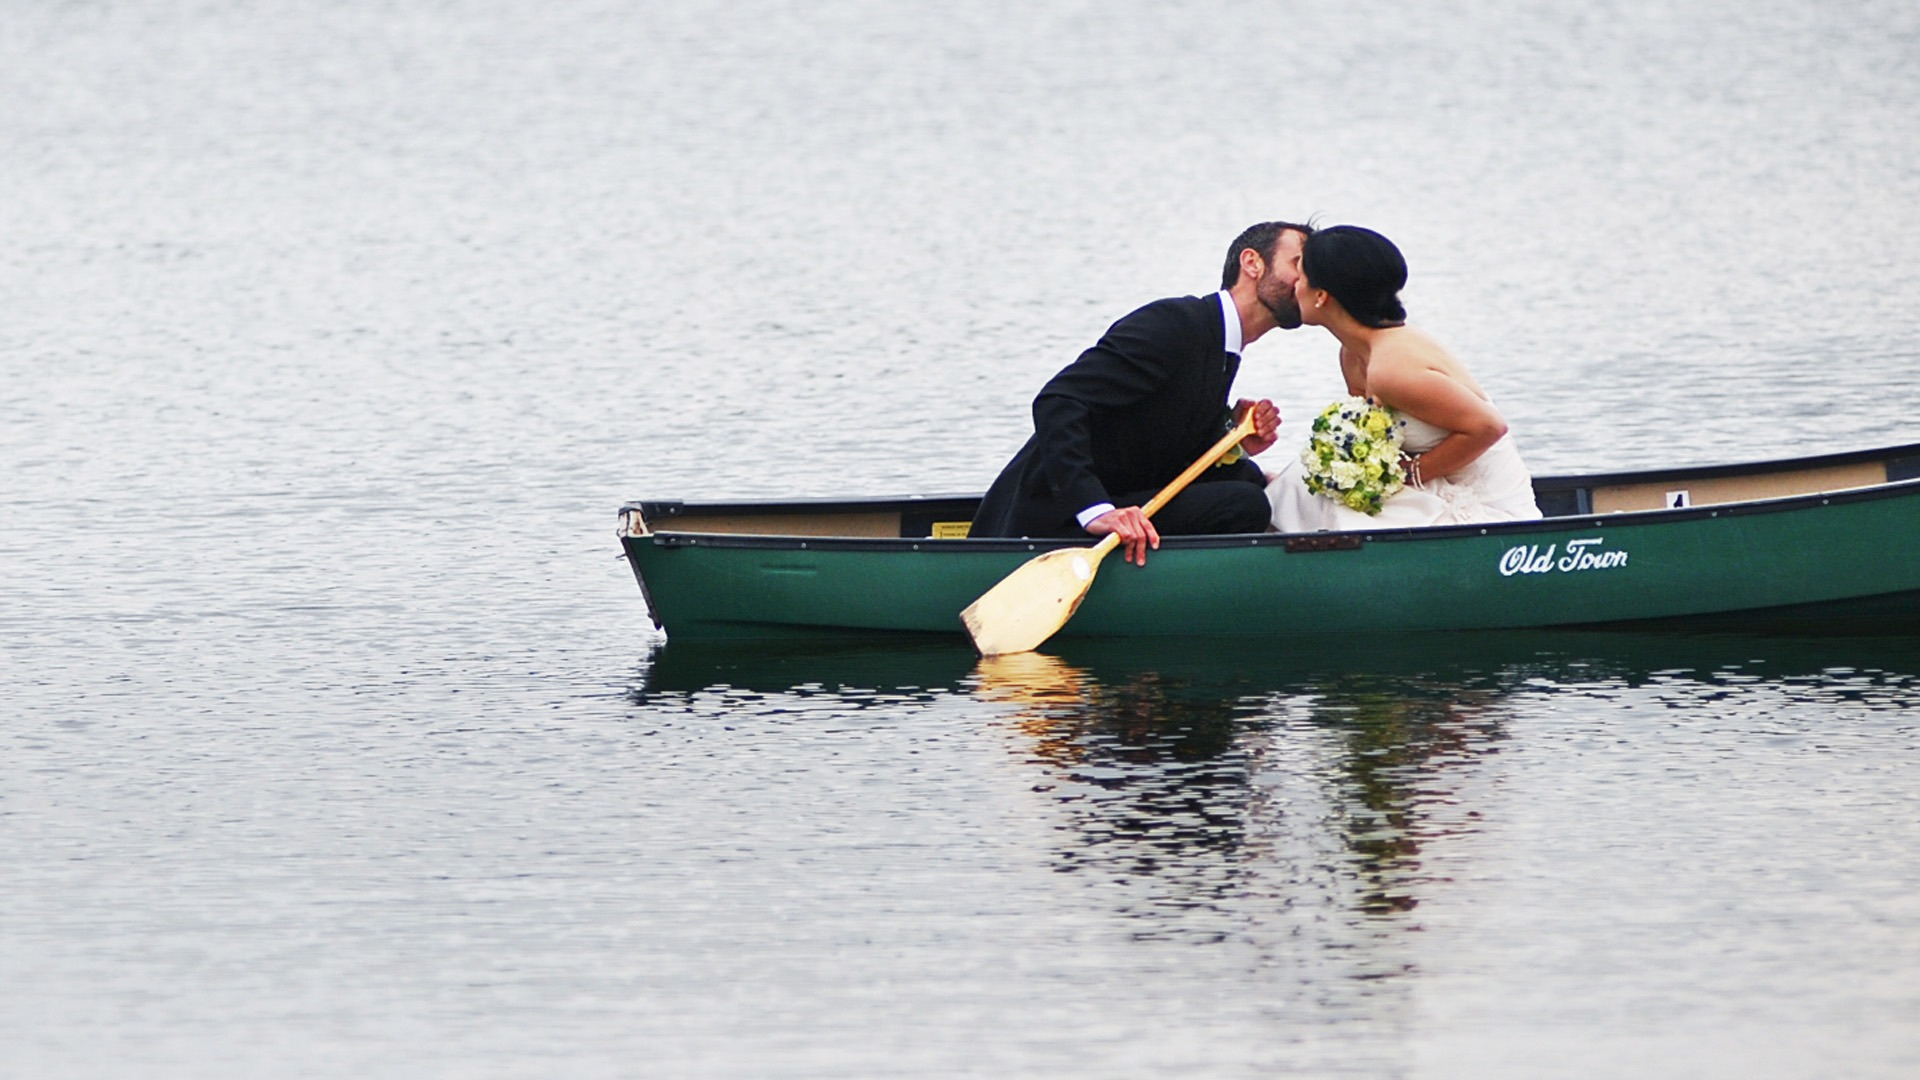 Destination Wedding Photographer | SlLIVER Photography | couple in a canoe